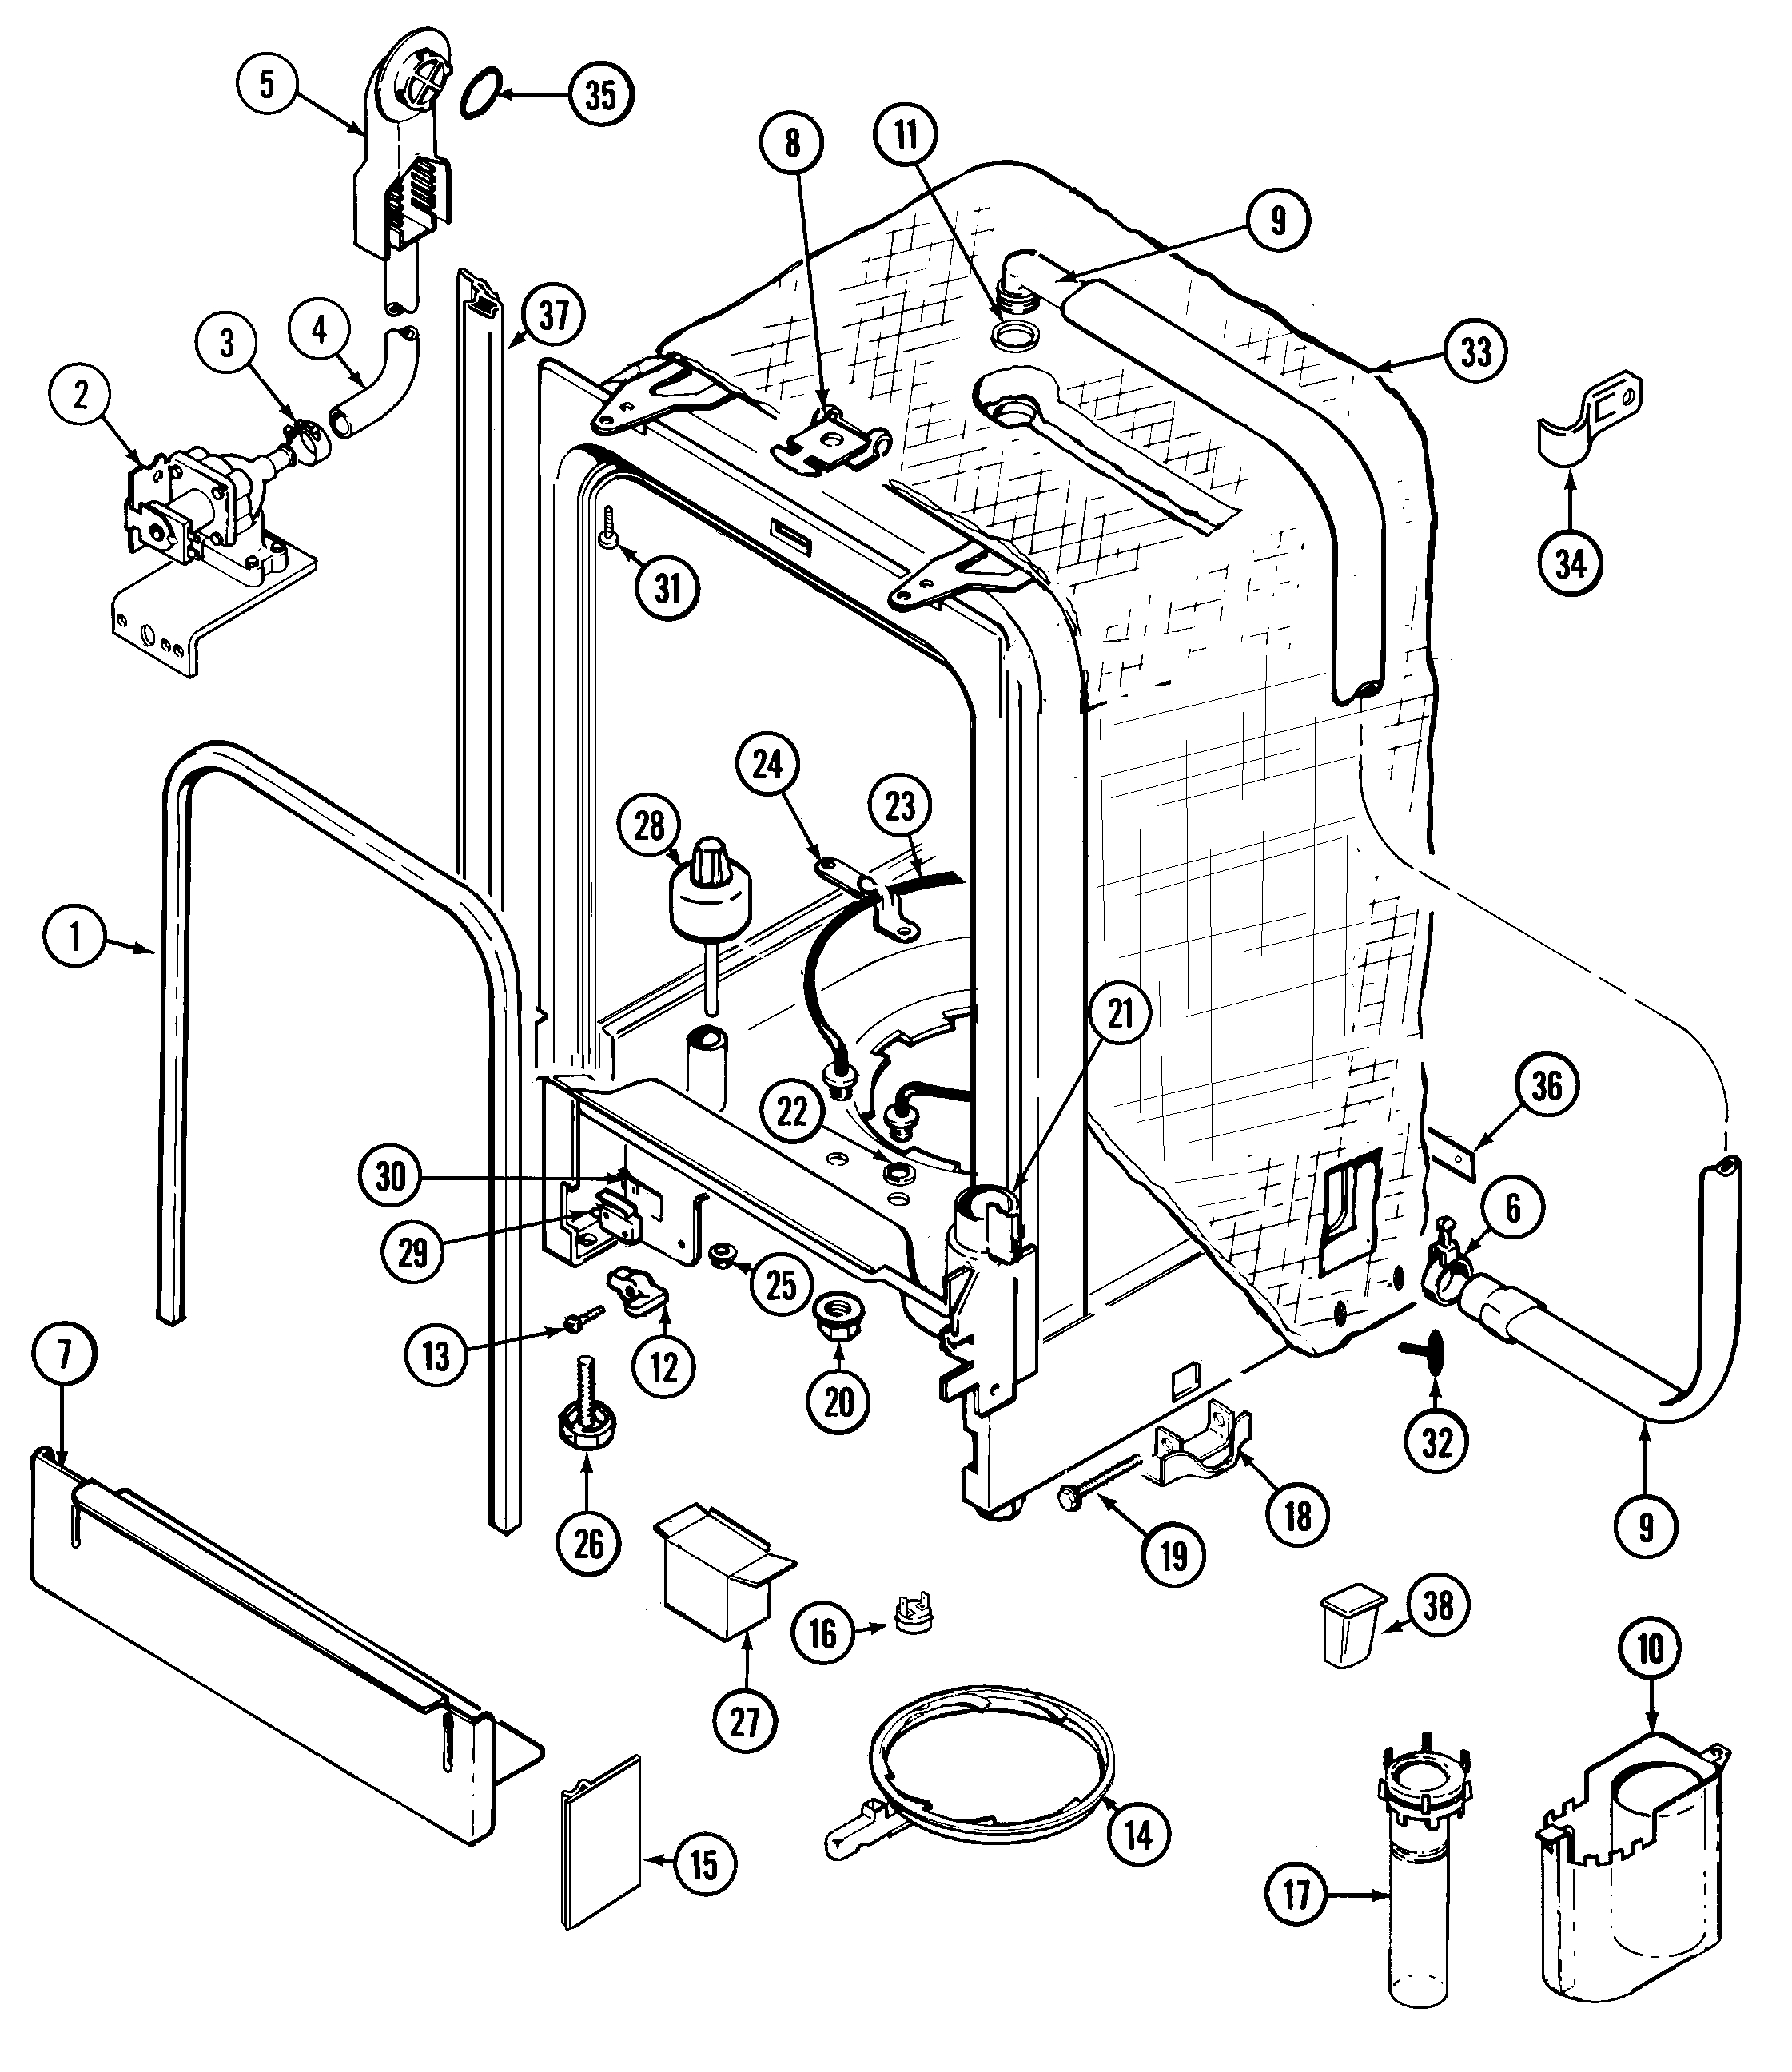 [DIAGRAM] Stero Dishwasher Wiring Diagrams For Er44 FULL